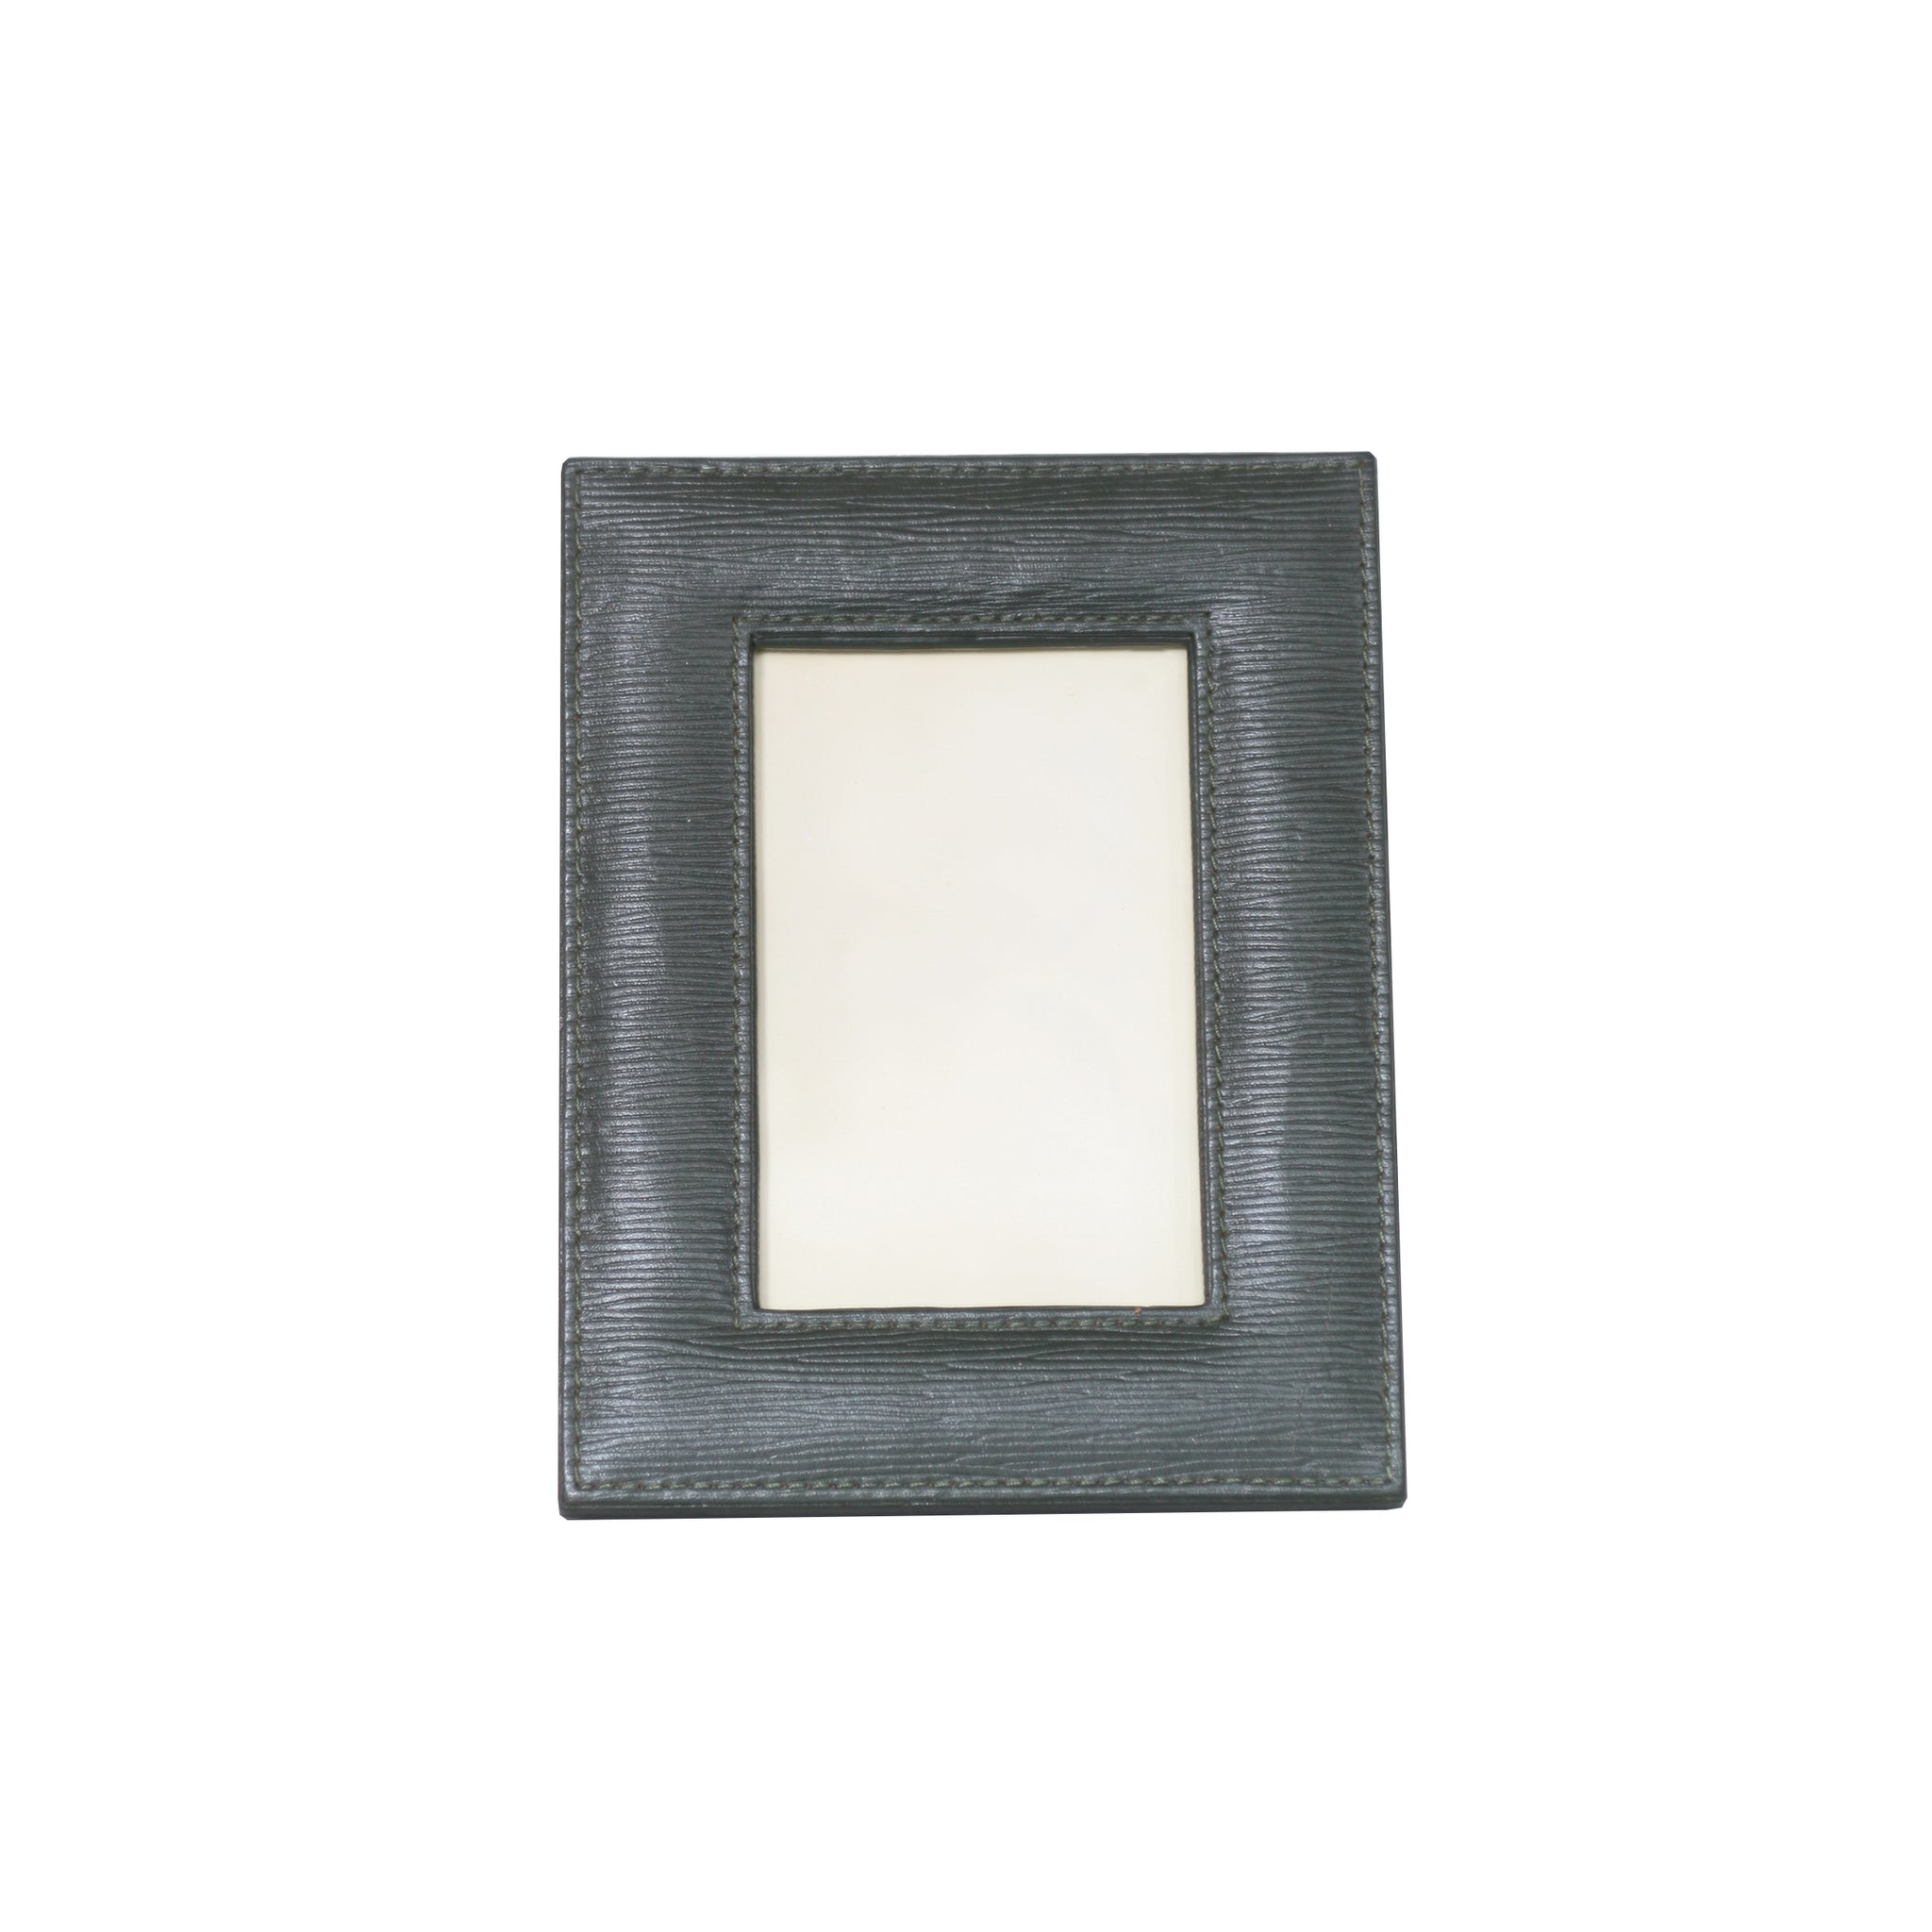 8 x 10 Green Leather Frame